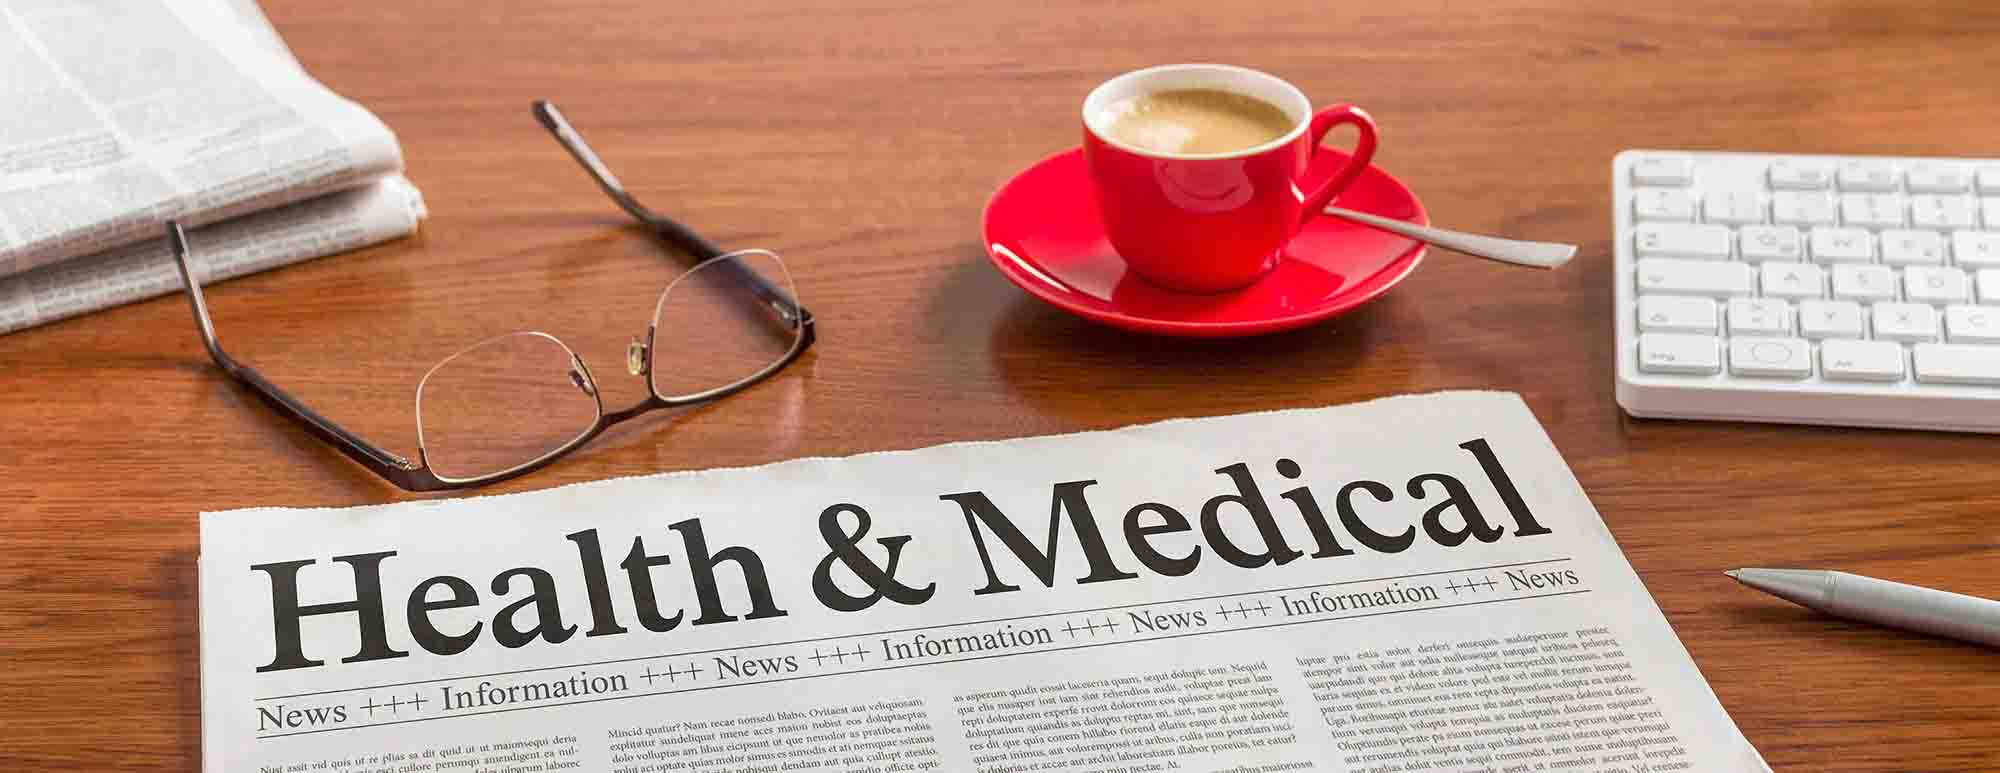 health research newspapers